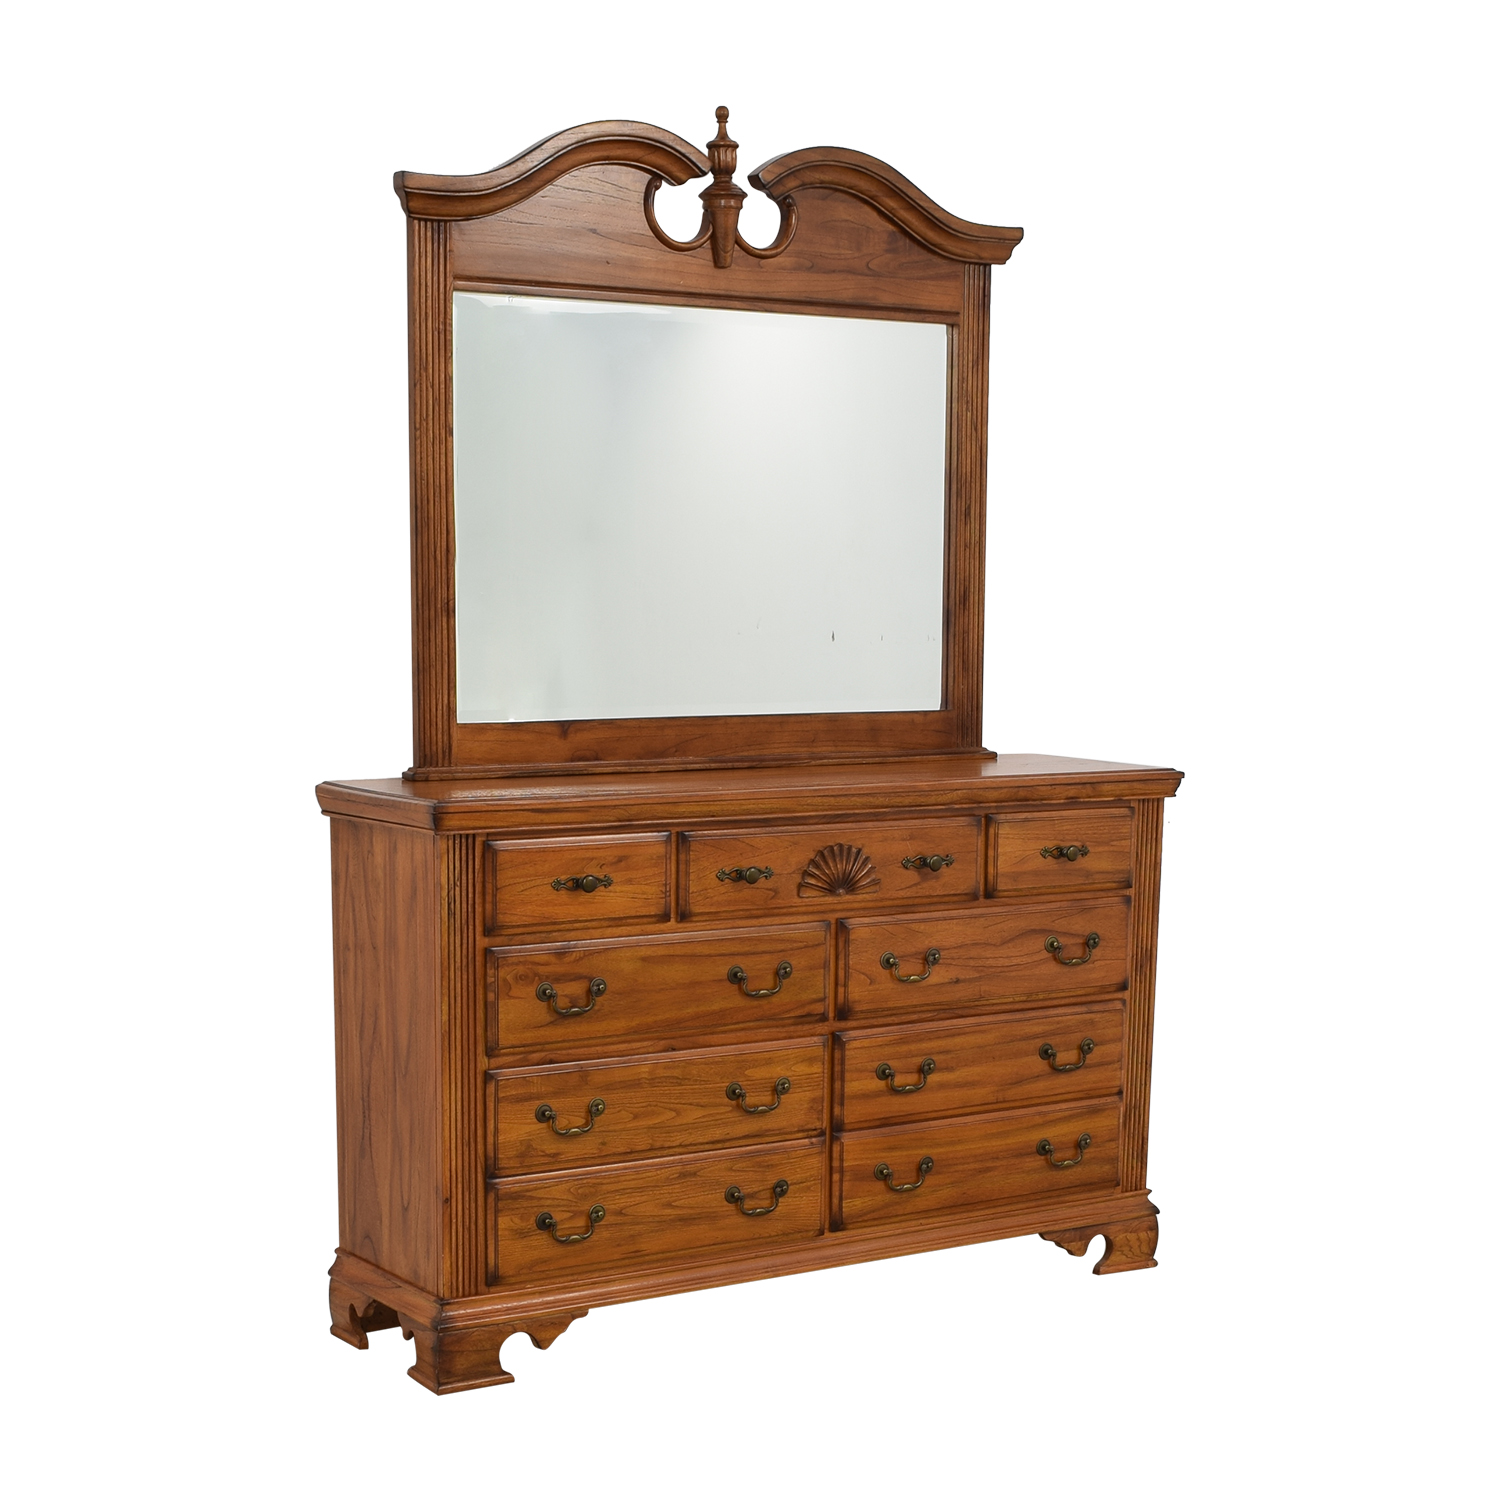 Millenia USA Millenia USA Seven Drawer Dresser with Mirror price